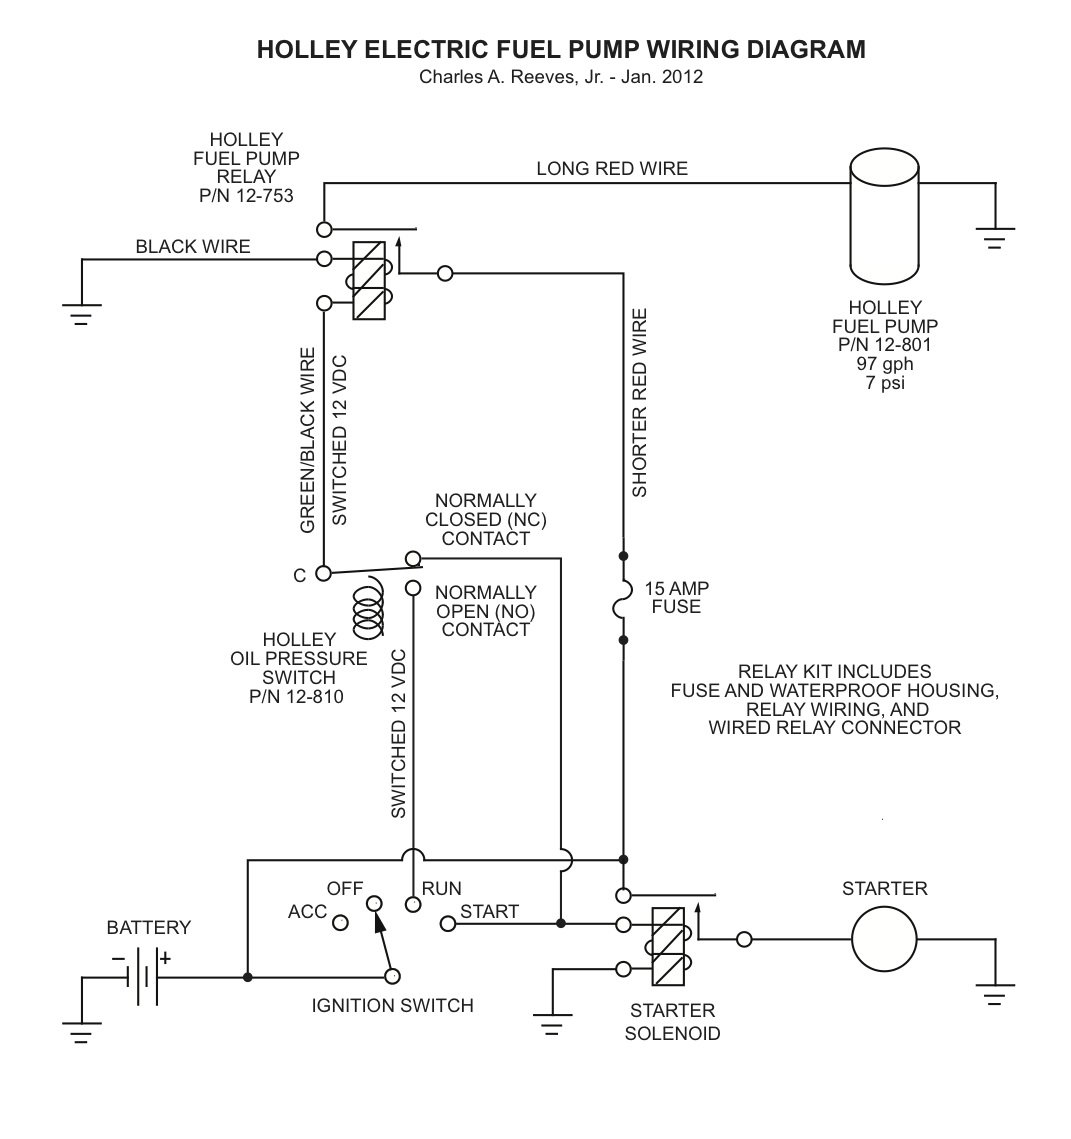 holley electric choke wiring diagram wiring diagram image for larger version elect fuel pump wiring diagram jpg views